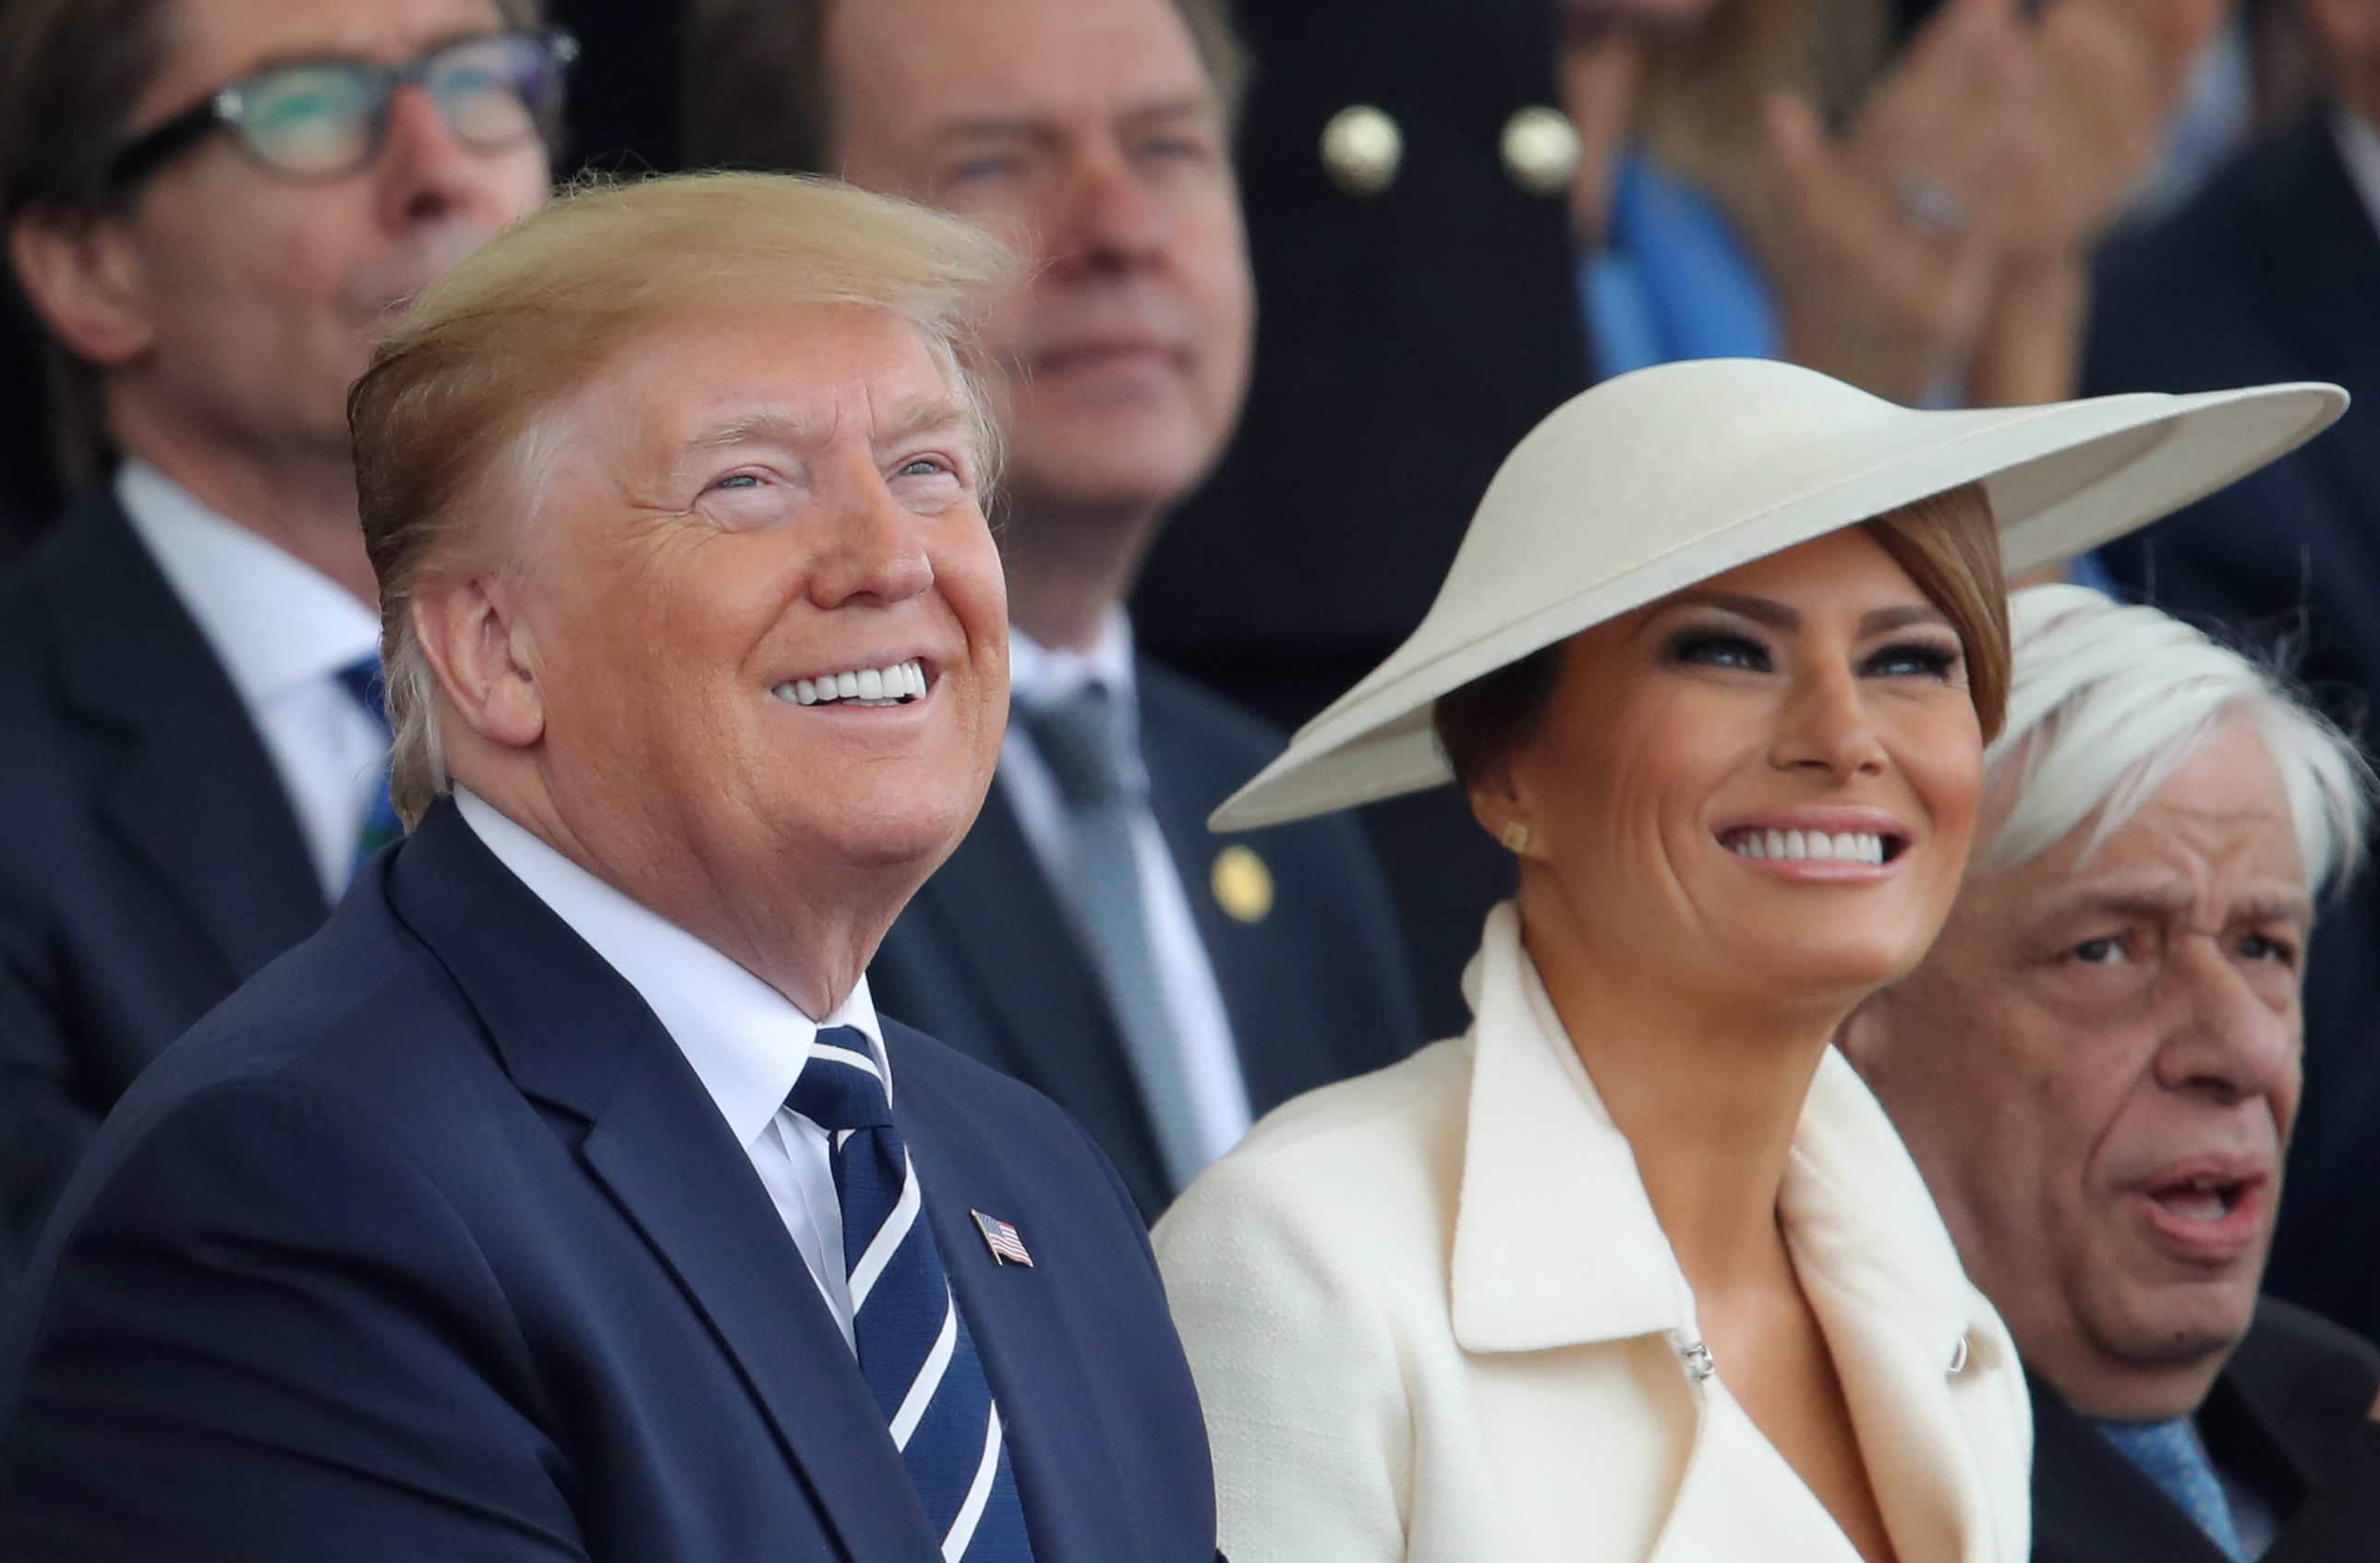 Donald and Melania Trump smiling